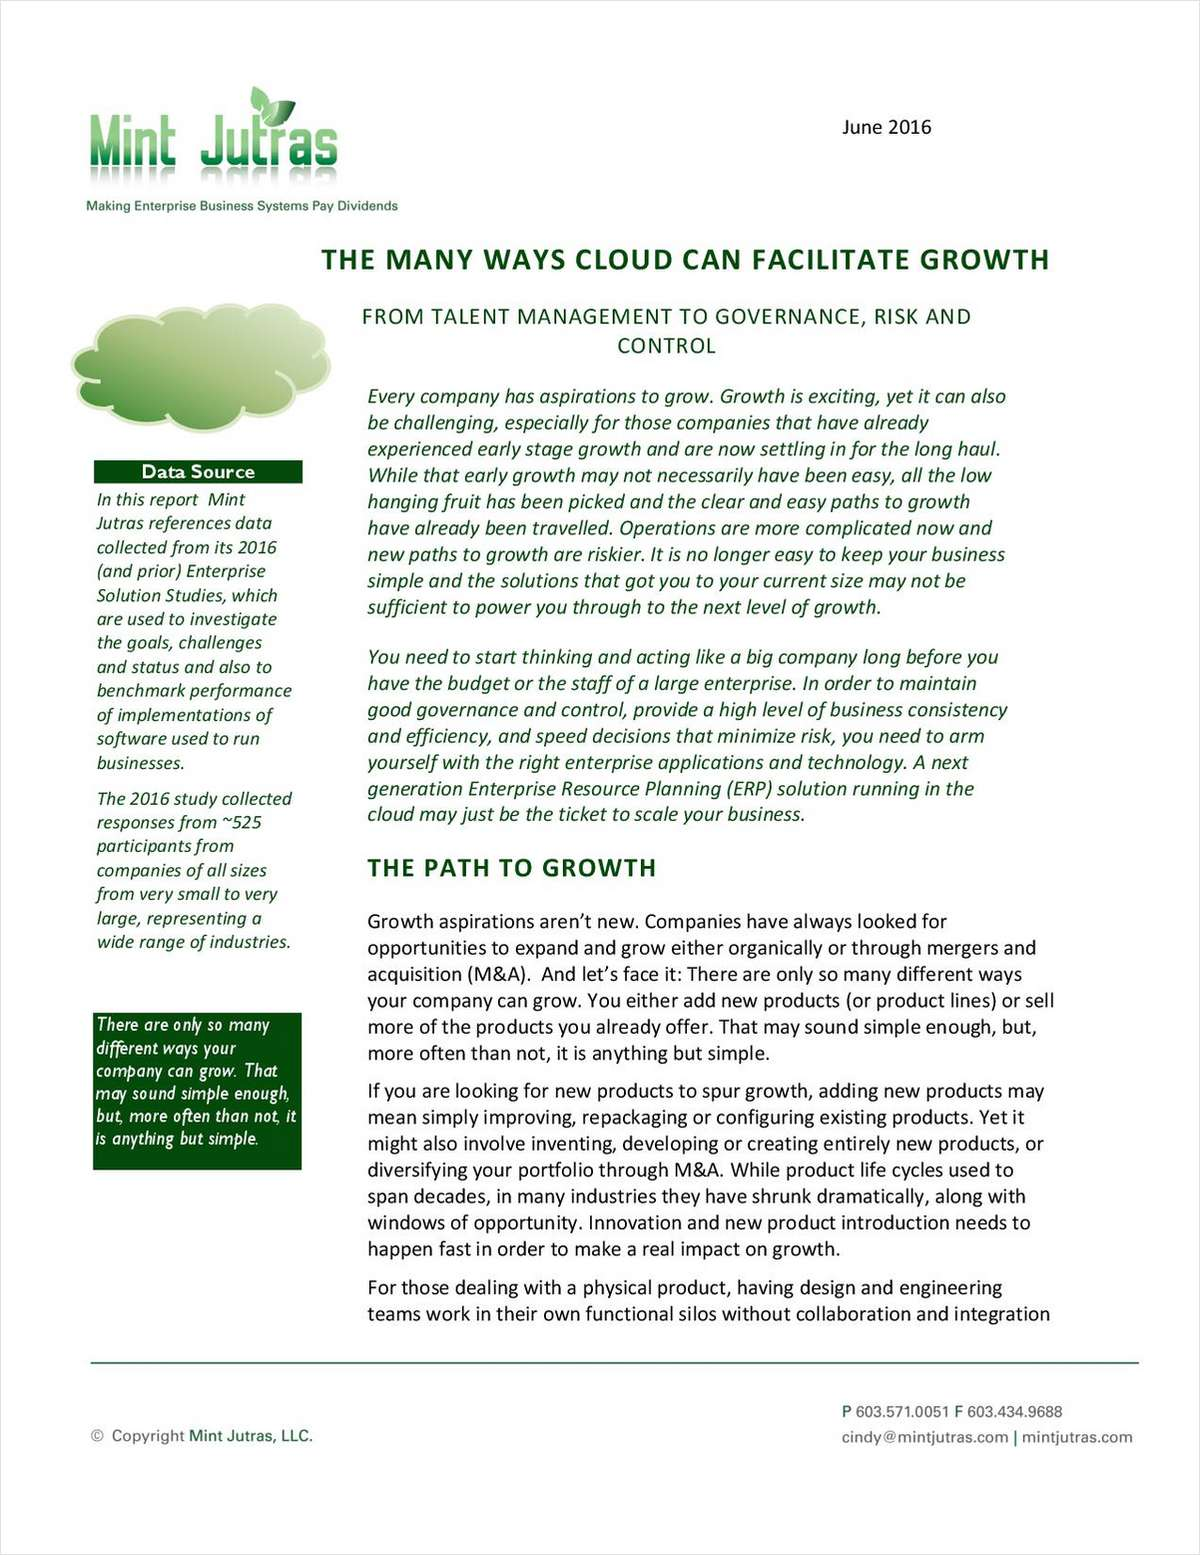 The Many Ways Cloud Can Facilitate Growth